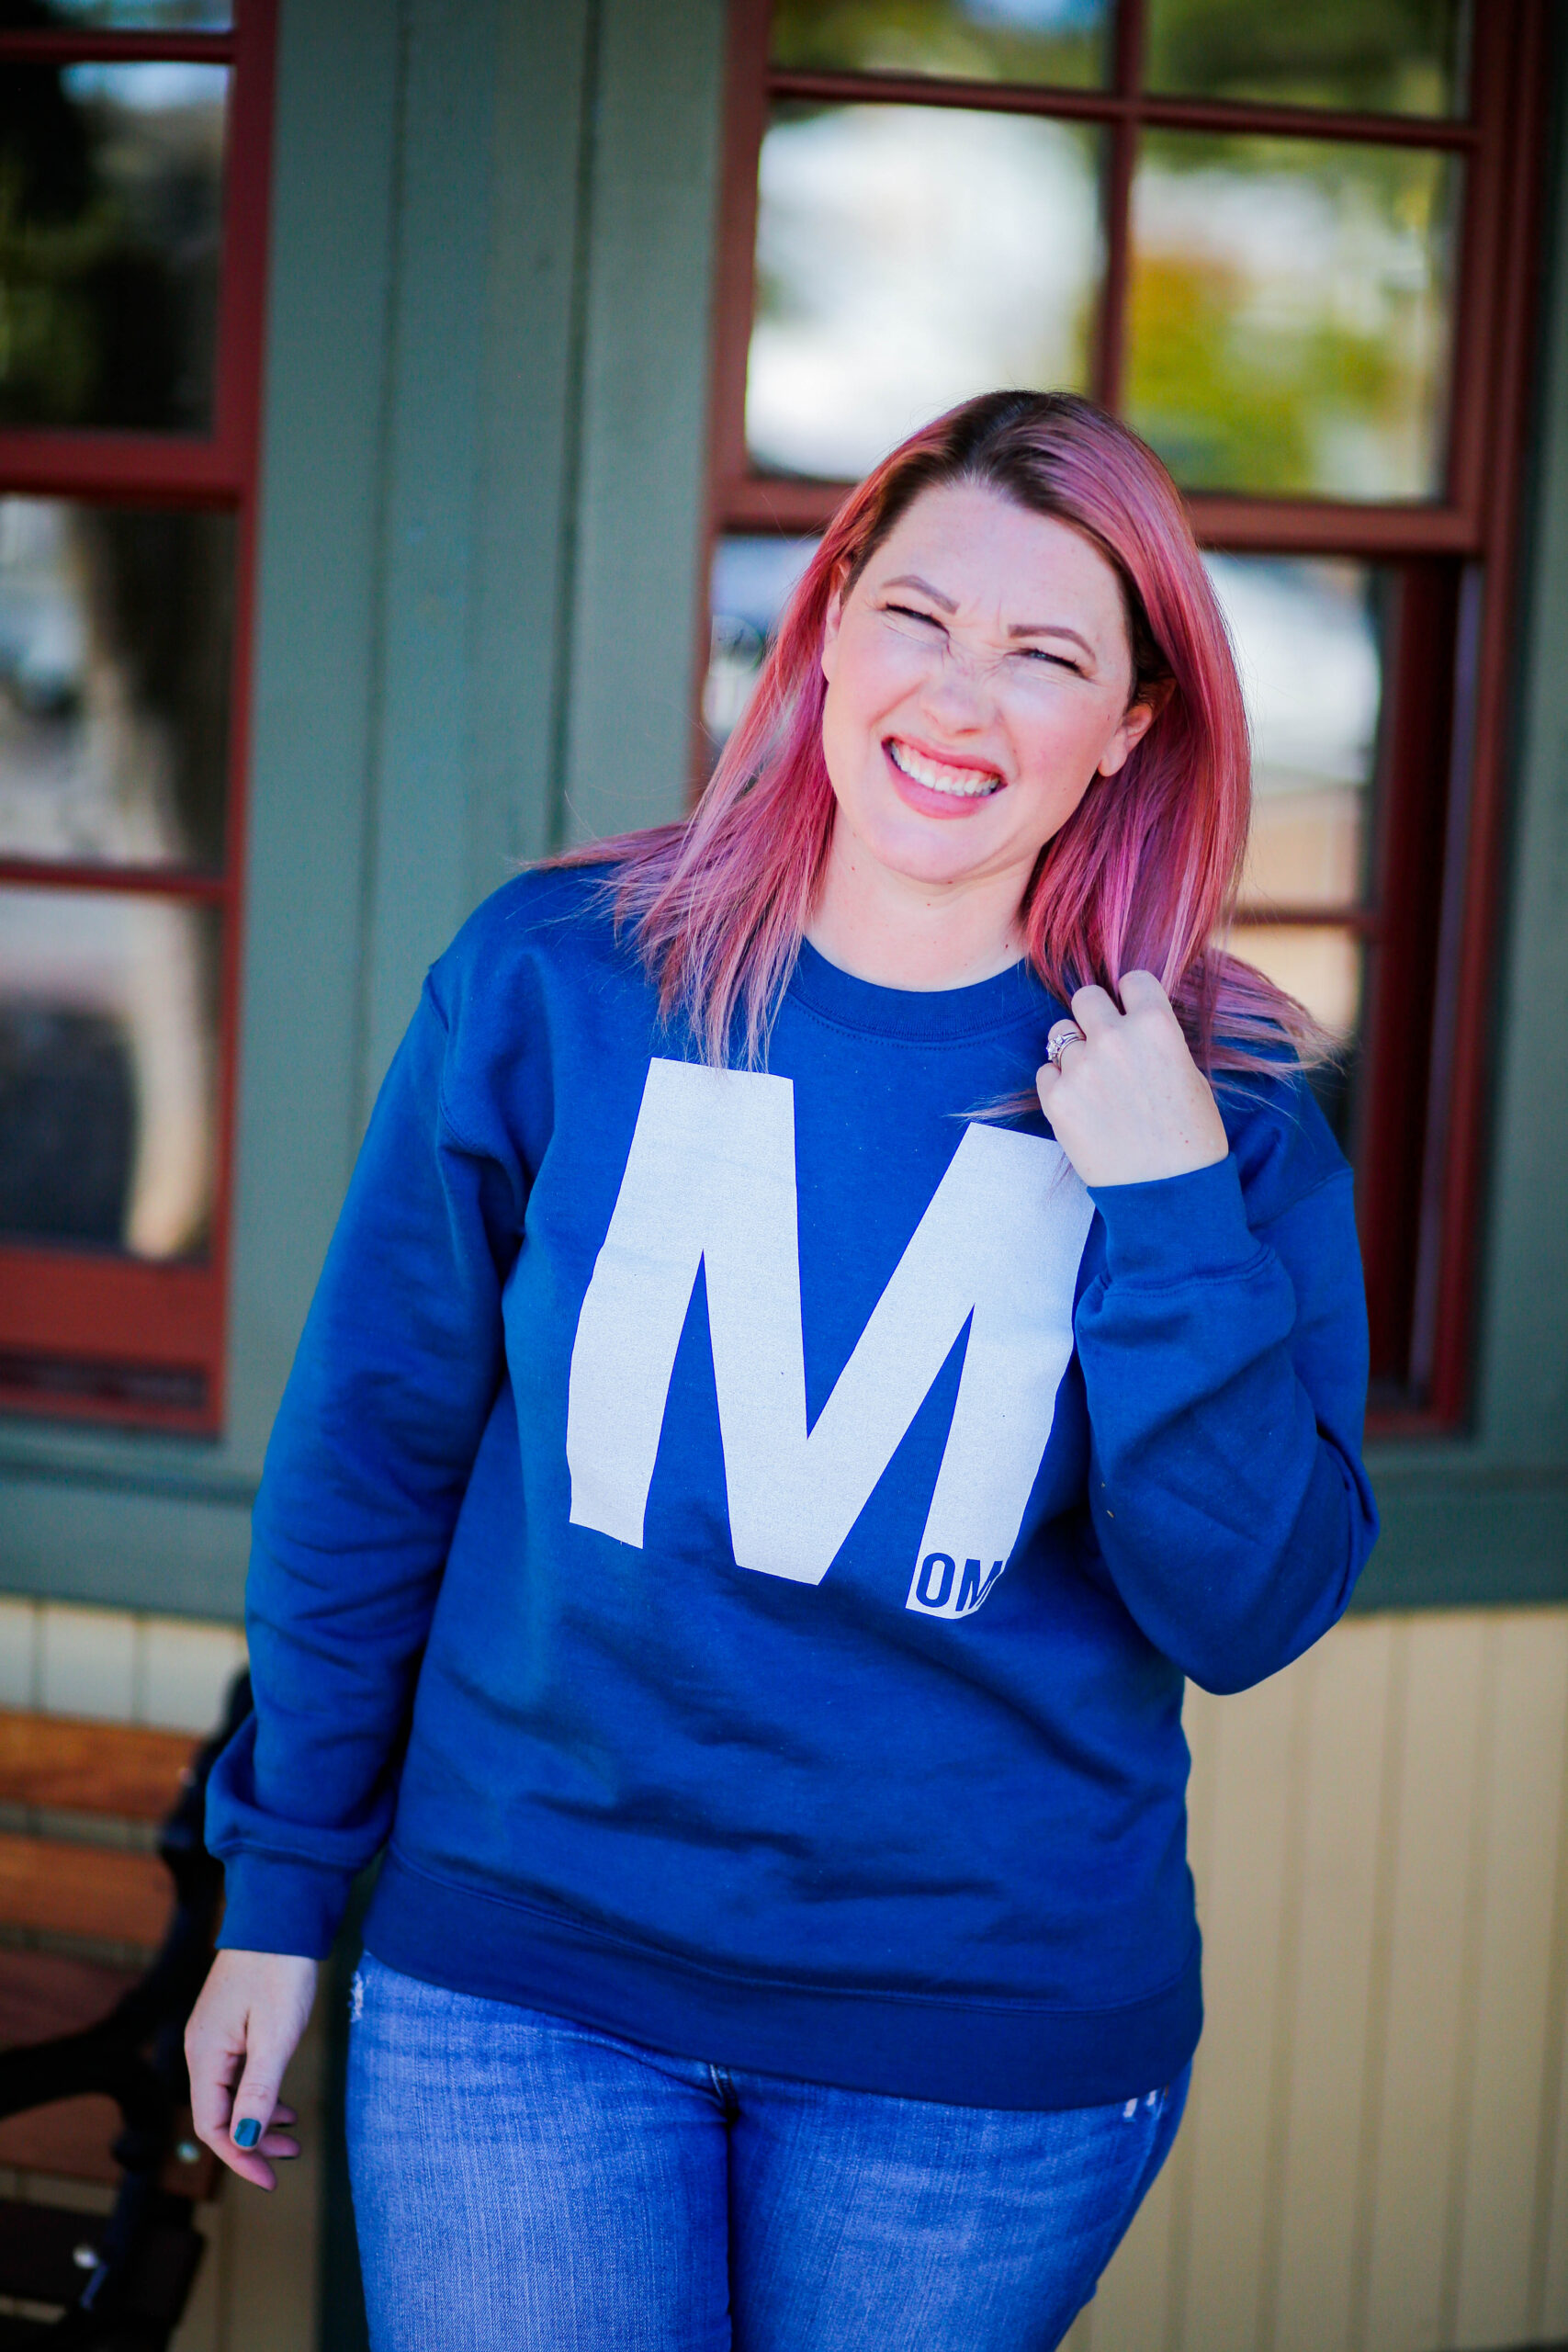 On the hunt for cute mom sweatshirts? These are the BEST ones available from small shops!